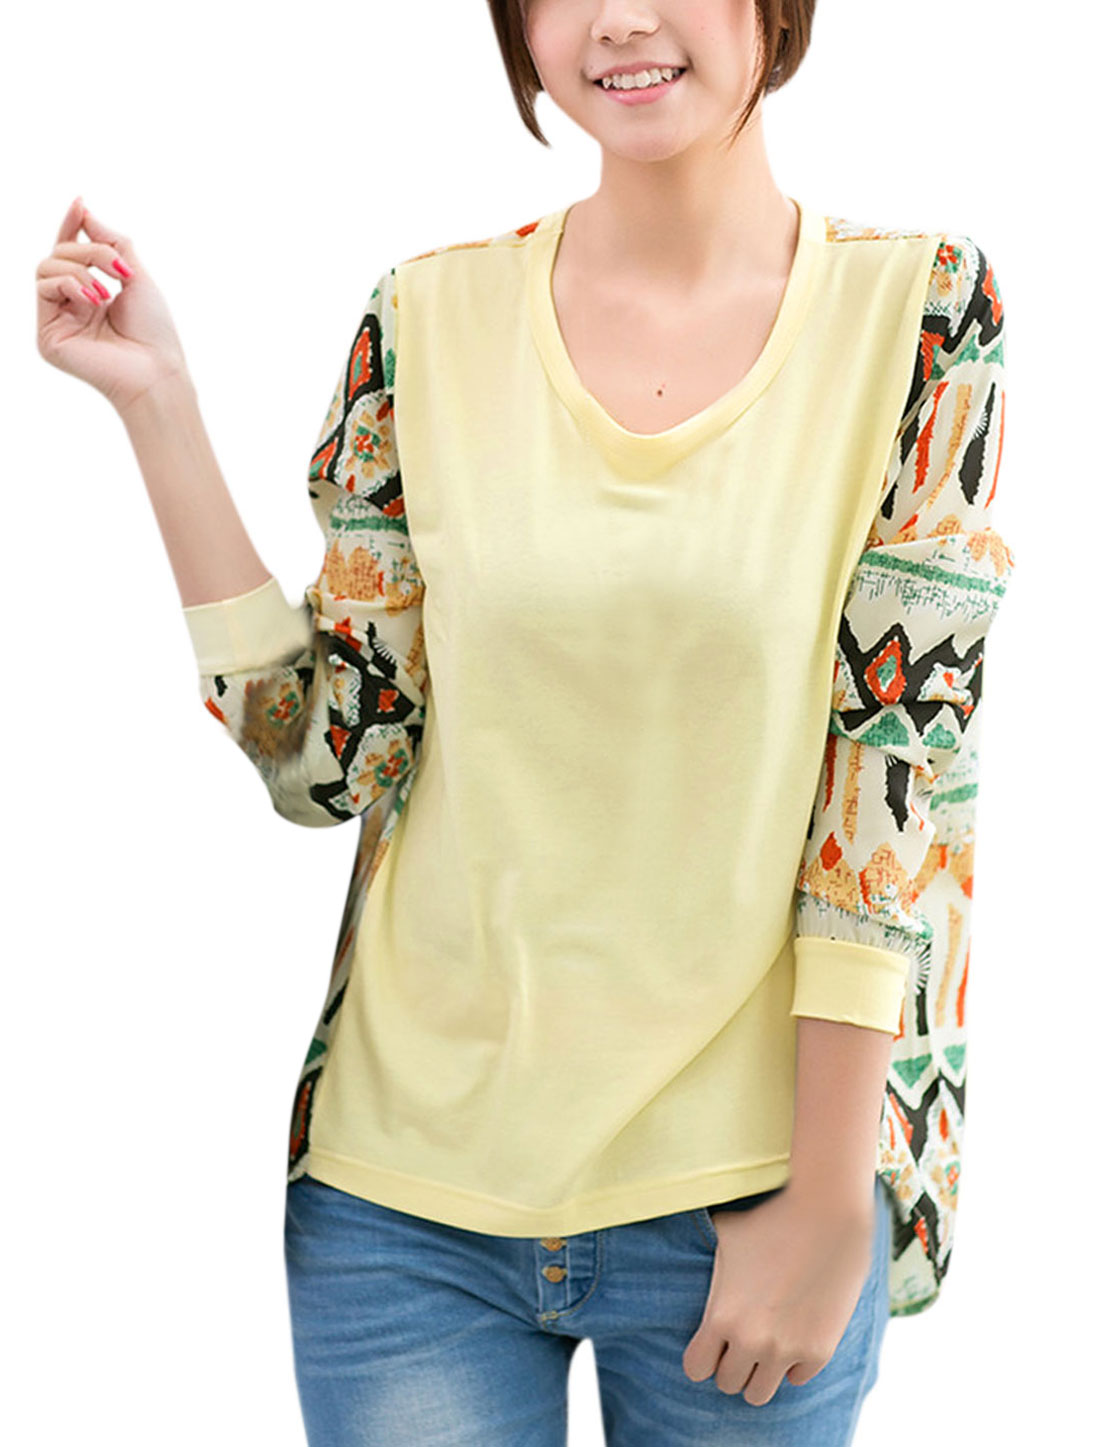 Lady Panel Design High Low Hem Argyle Prints T-Shirt Light Yellow XS